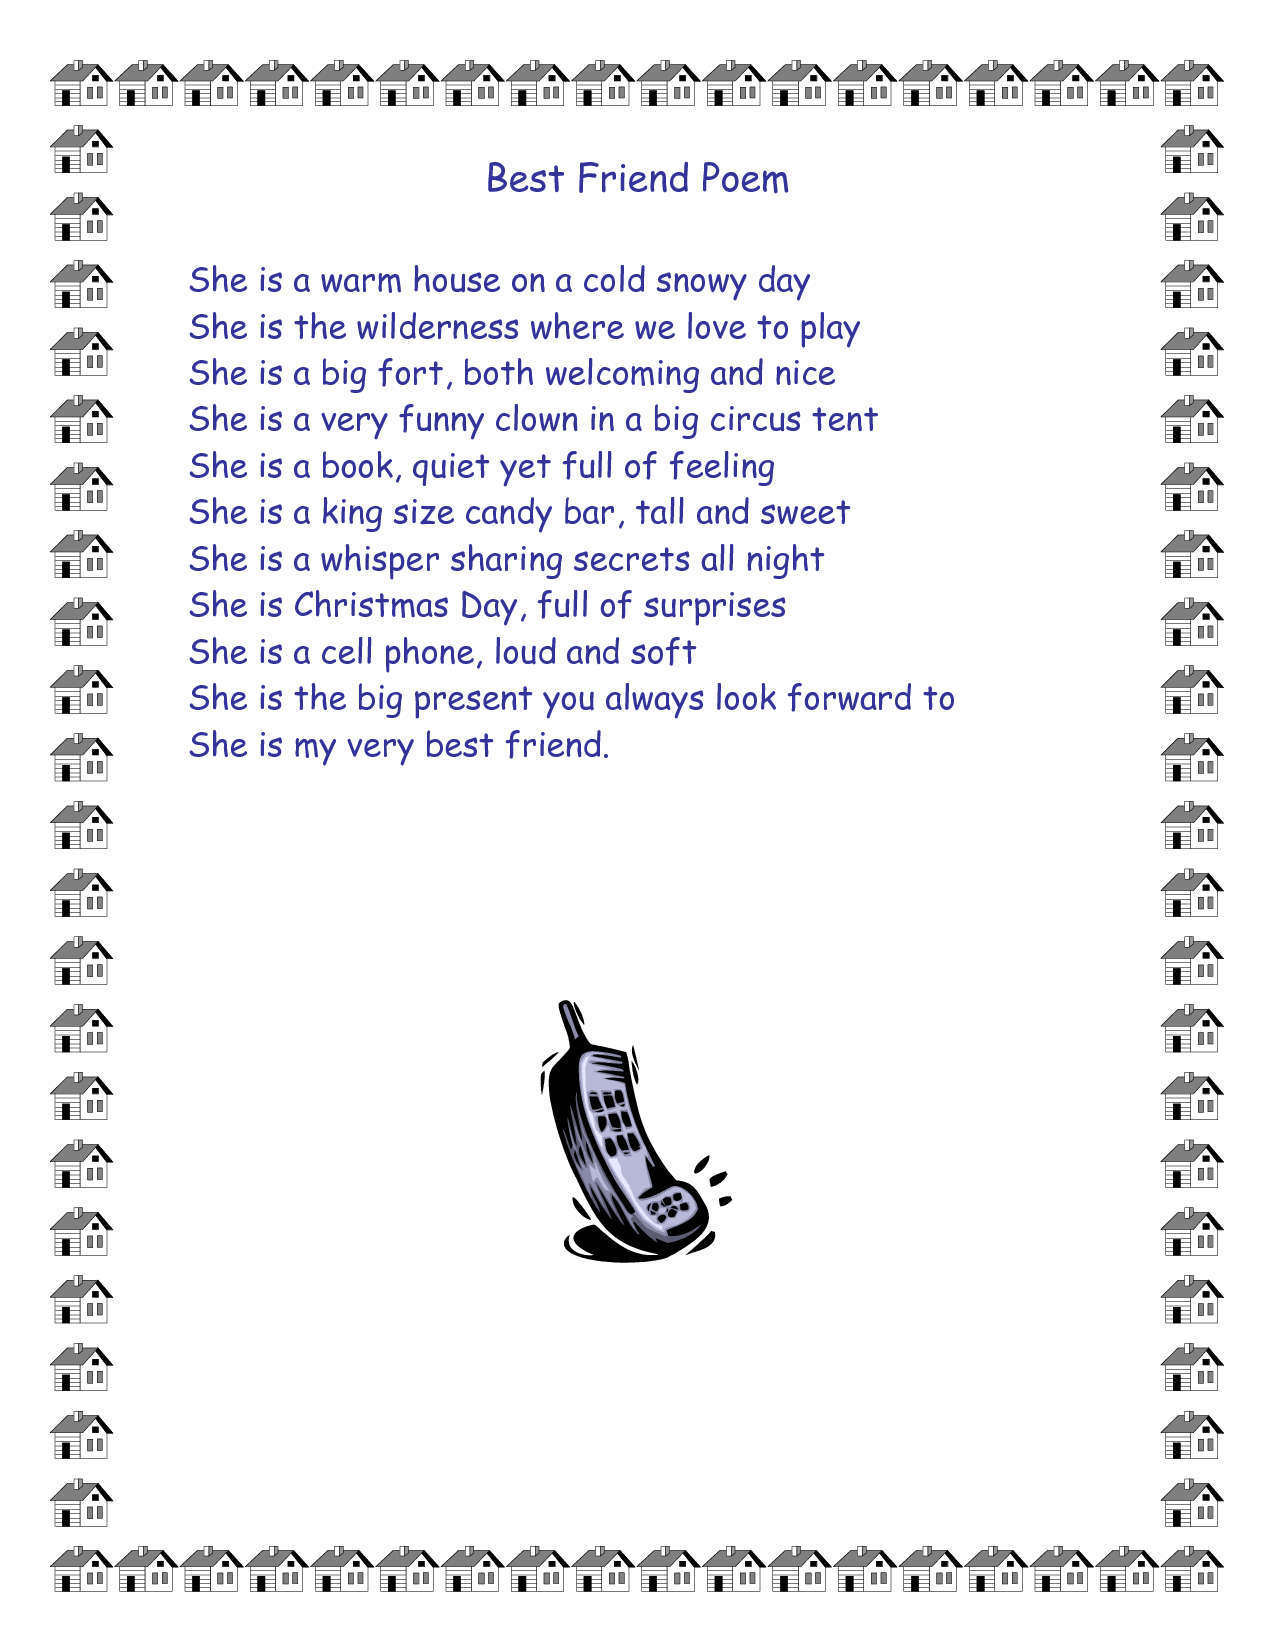 funny clown poems best friend poem projects to try friend